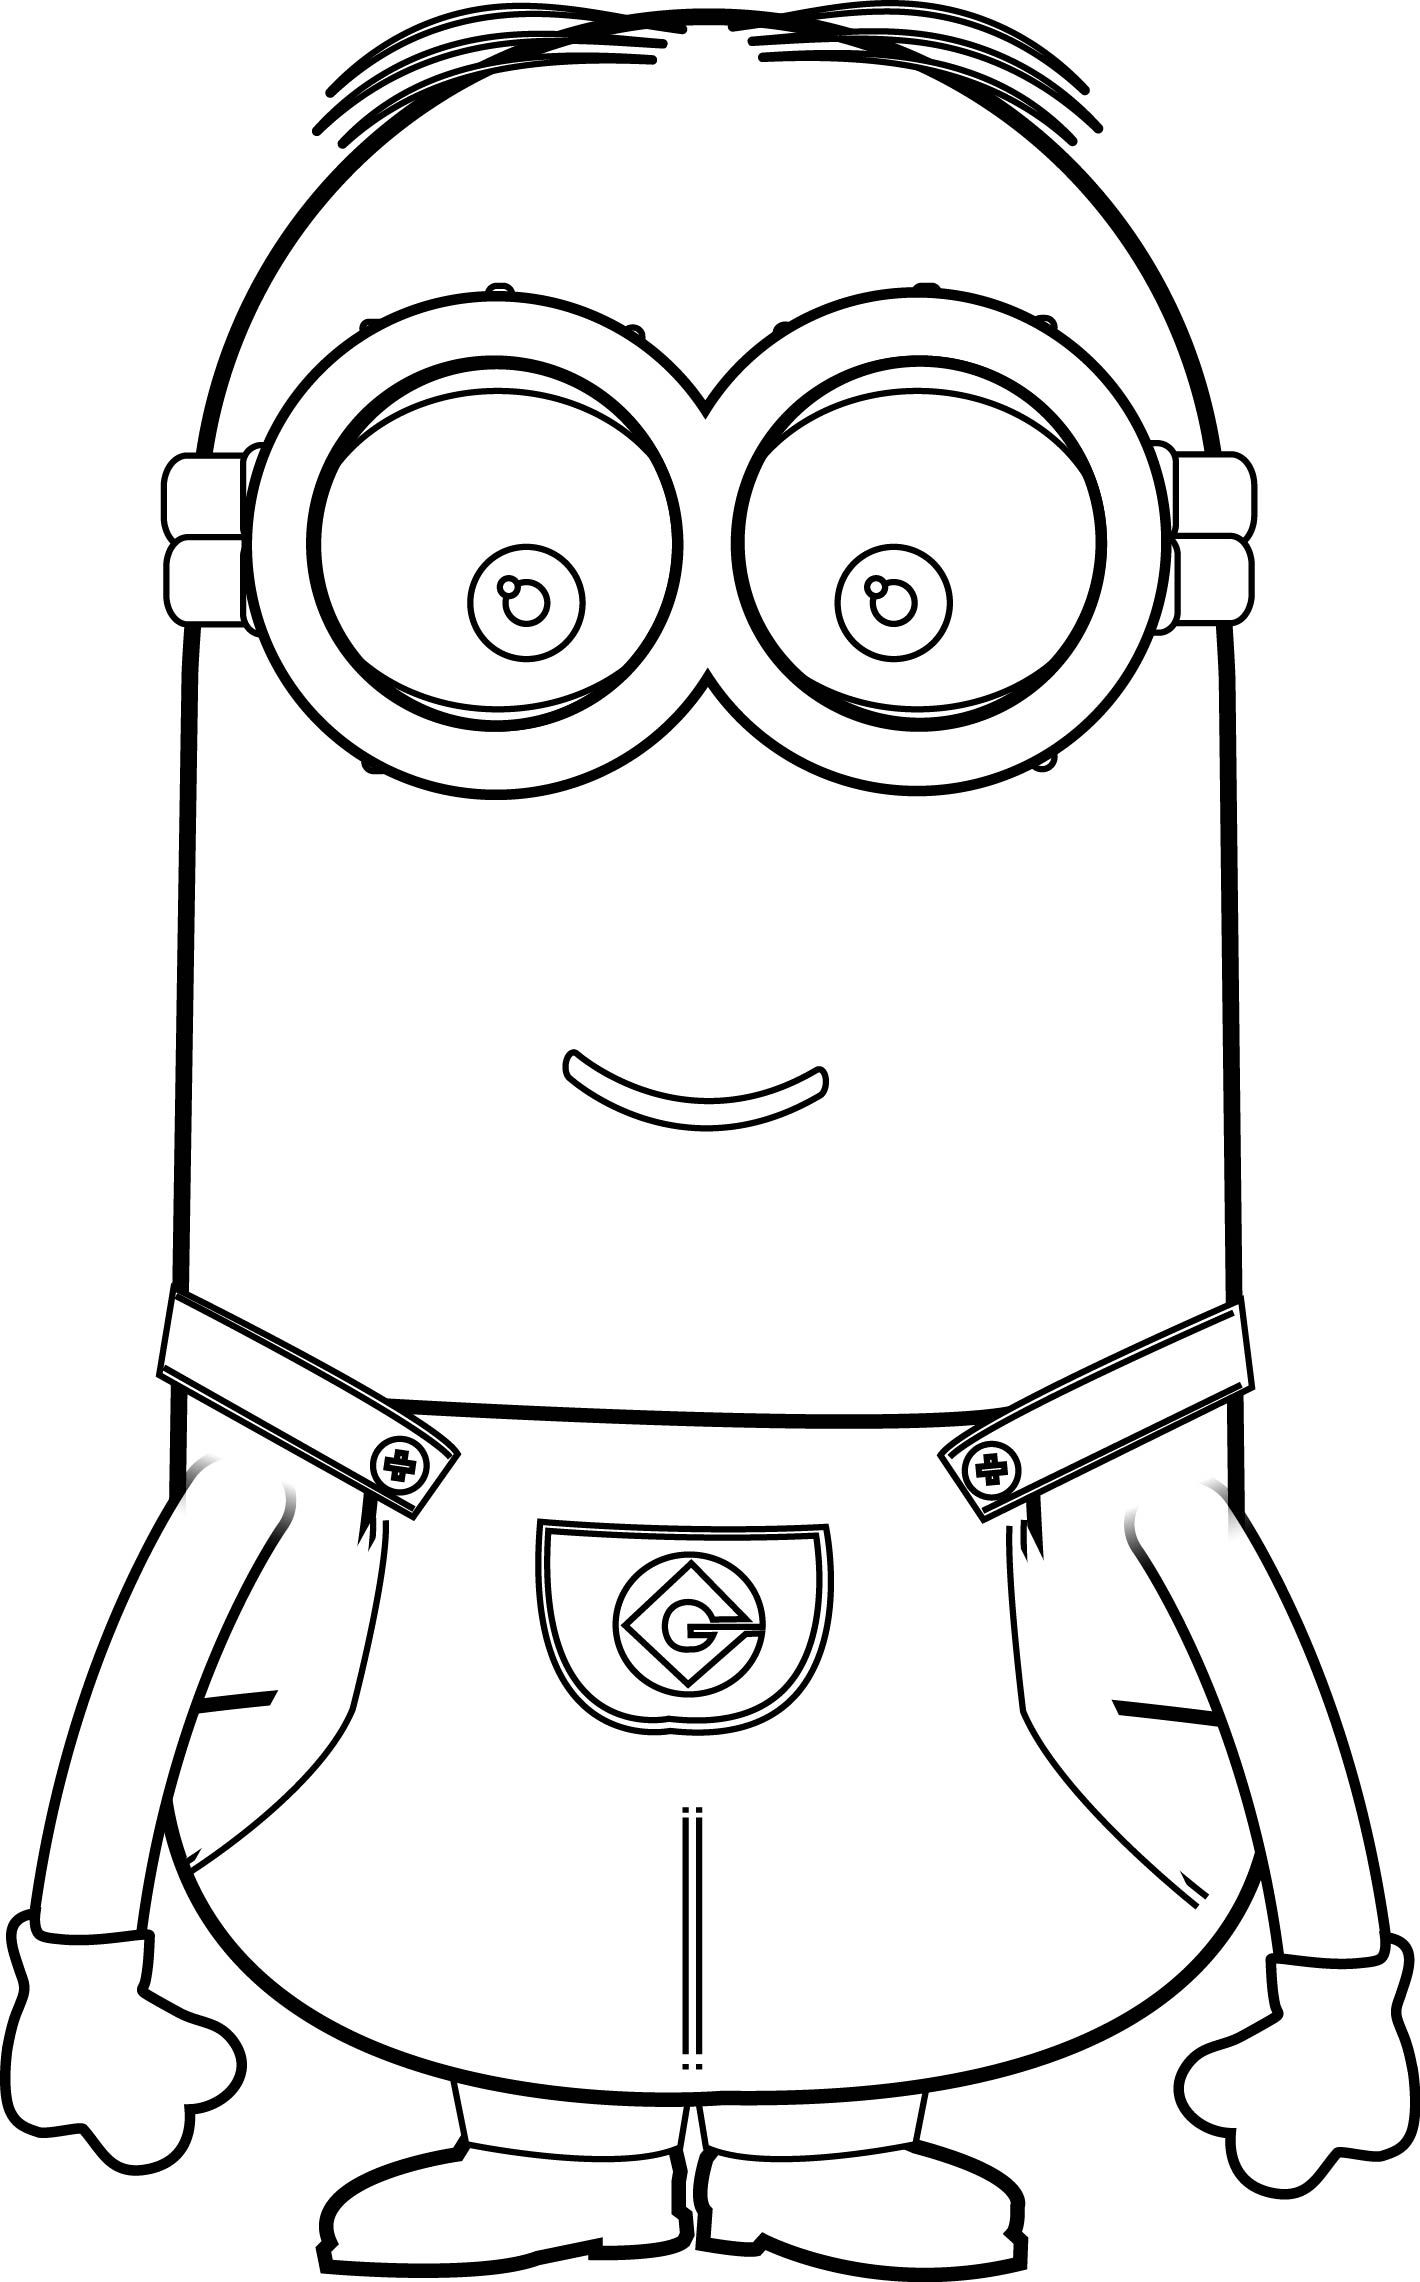 Minions Kevin Perfect Coloring Page Minion Coloring Pages Minions Coloring Pages Minion Painting